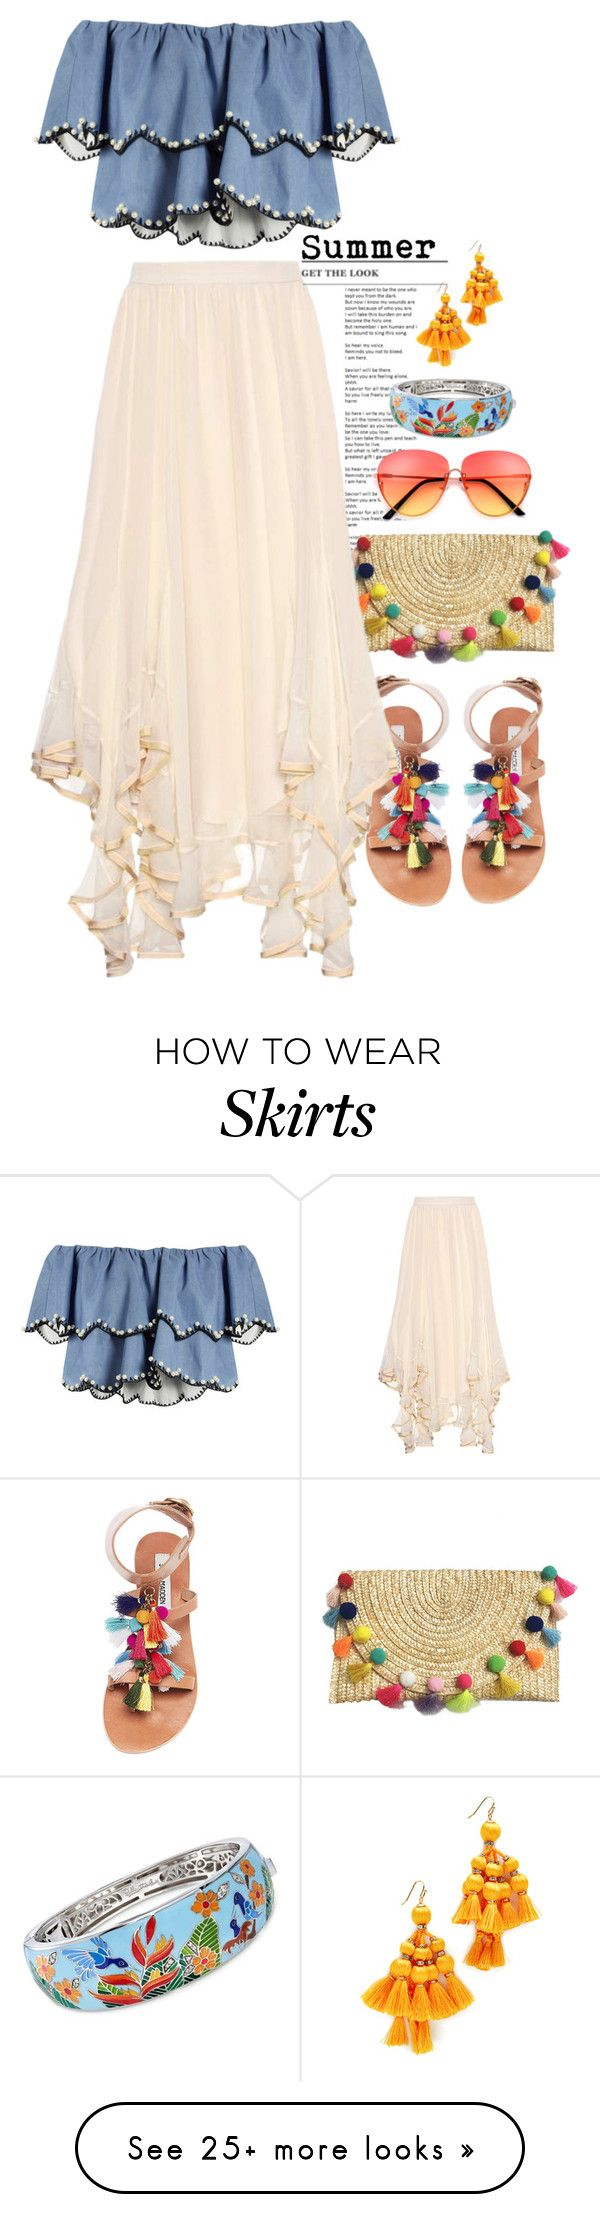 """Simple Summer"" by jenlynn59 on Polyvore featuring HUISHAN ZHANG, Steve Madden, Chloé, Kate Spade, Belle Etoile, croptop, summerstyle and simplebutneverplain"